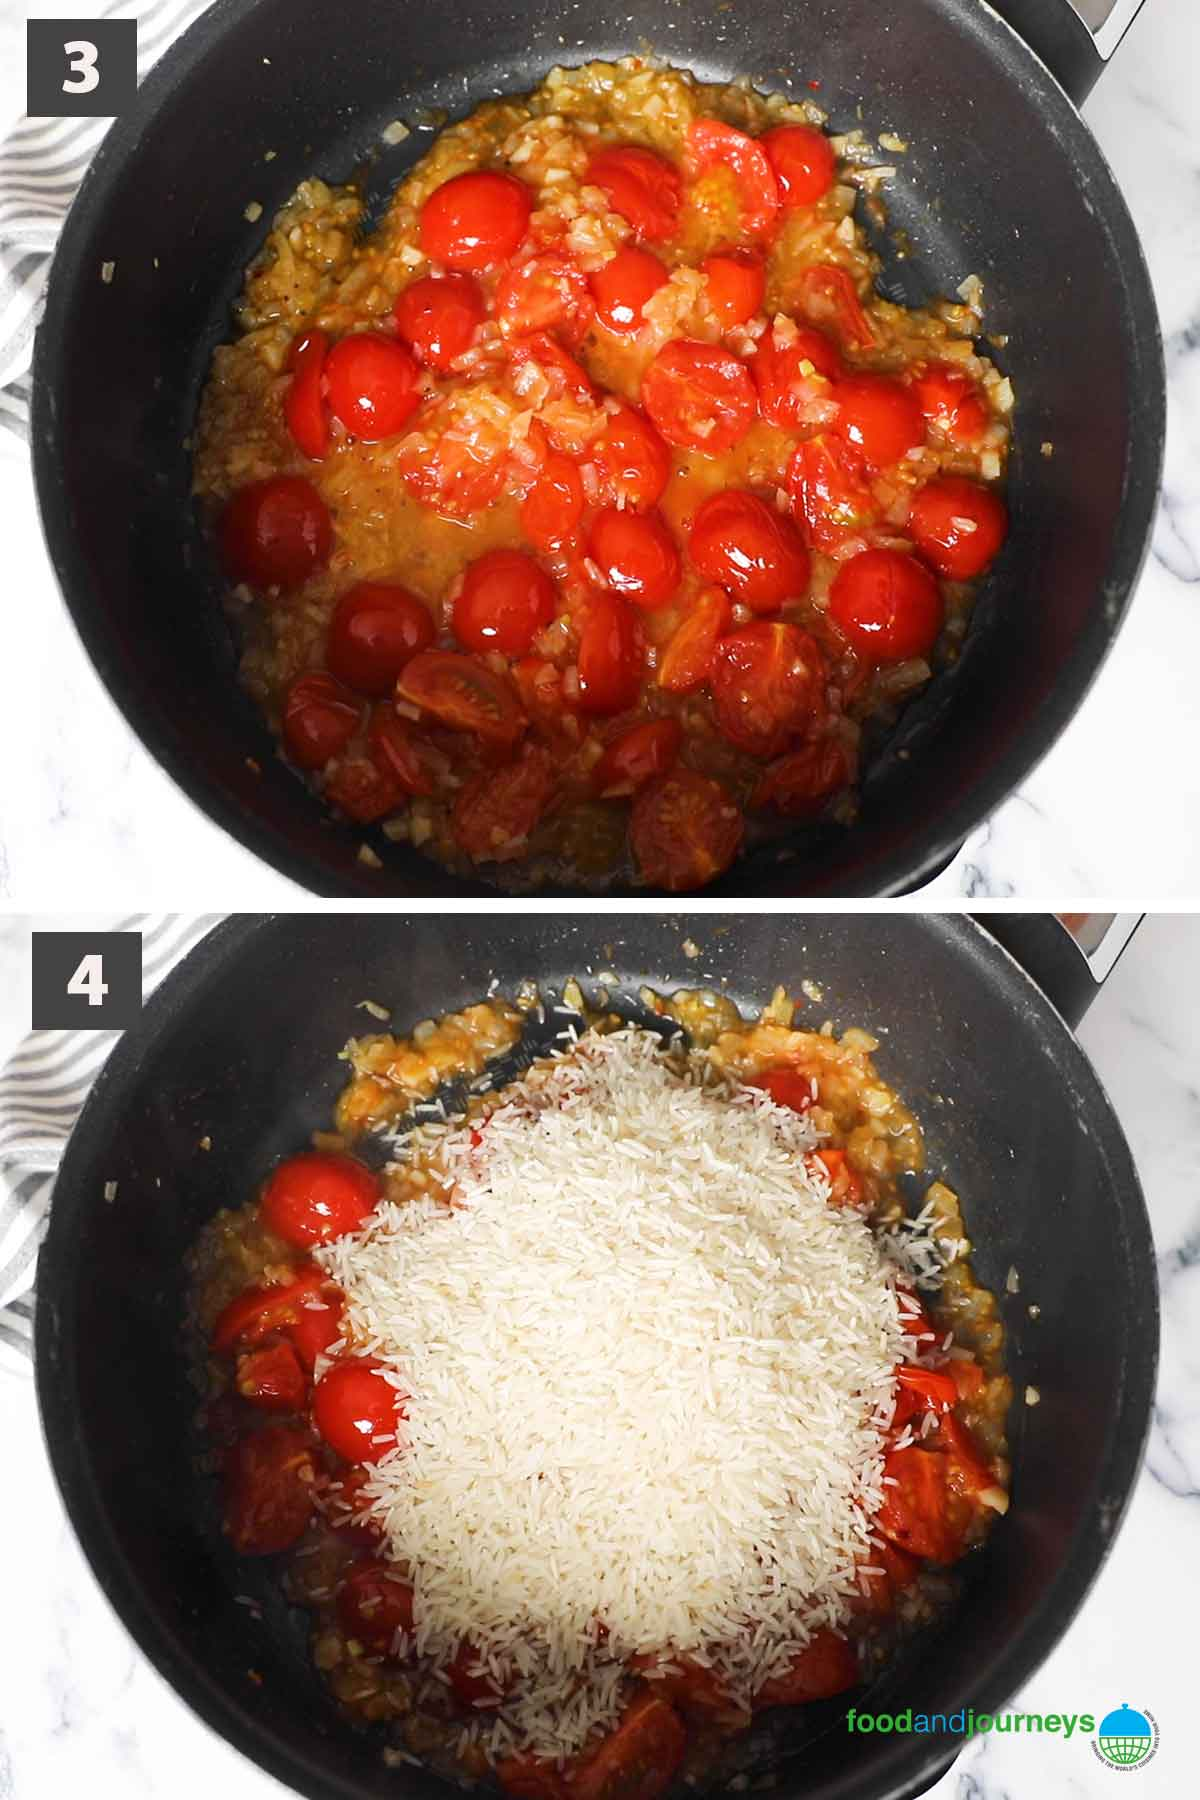 Latest second part of a collage showing the step by step process of making arroz de tomate at home.